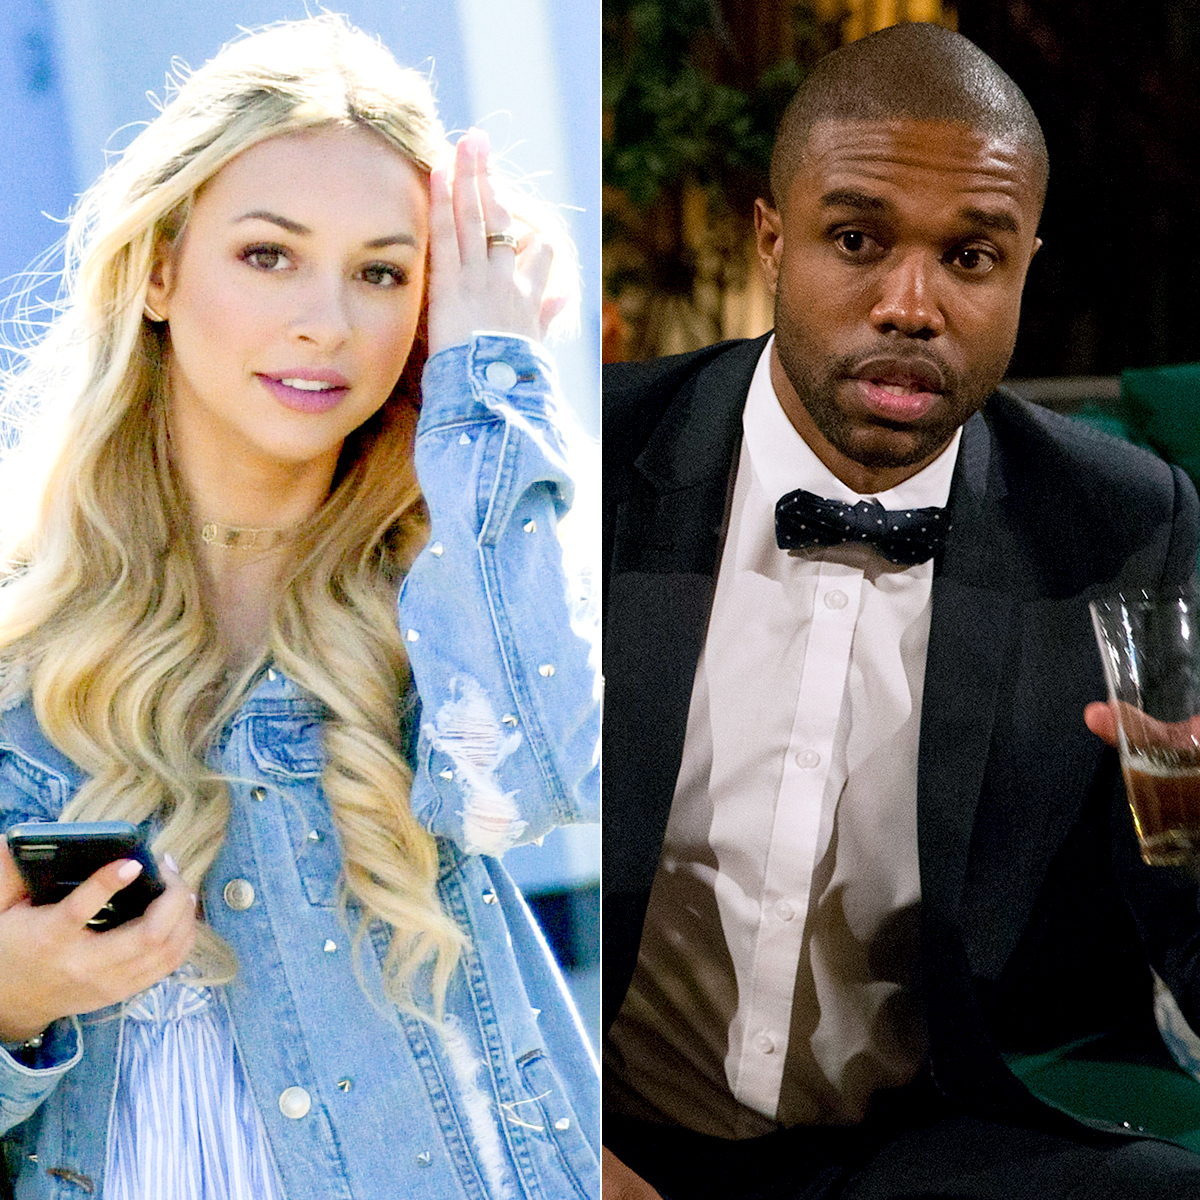 Corinne Olympios and DeMario